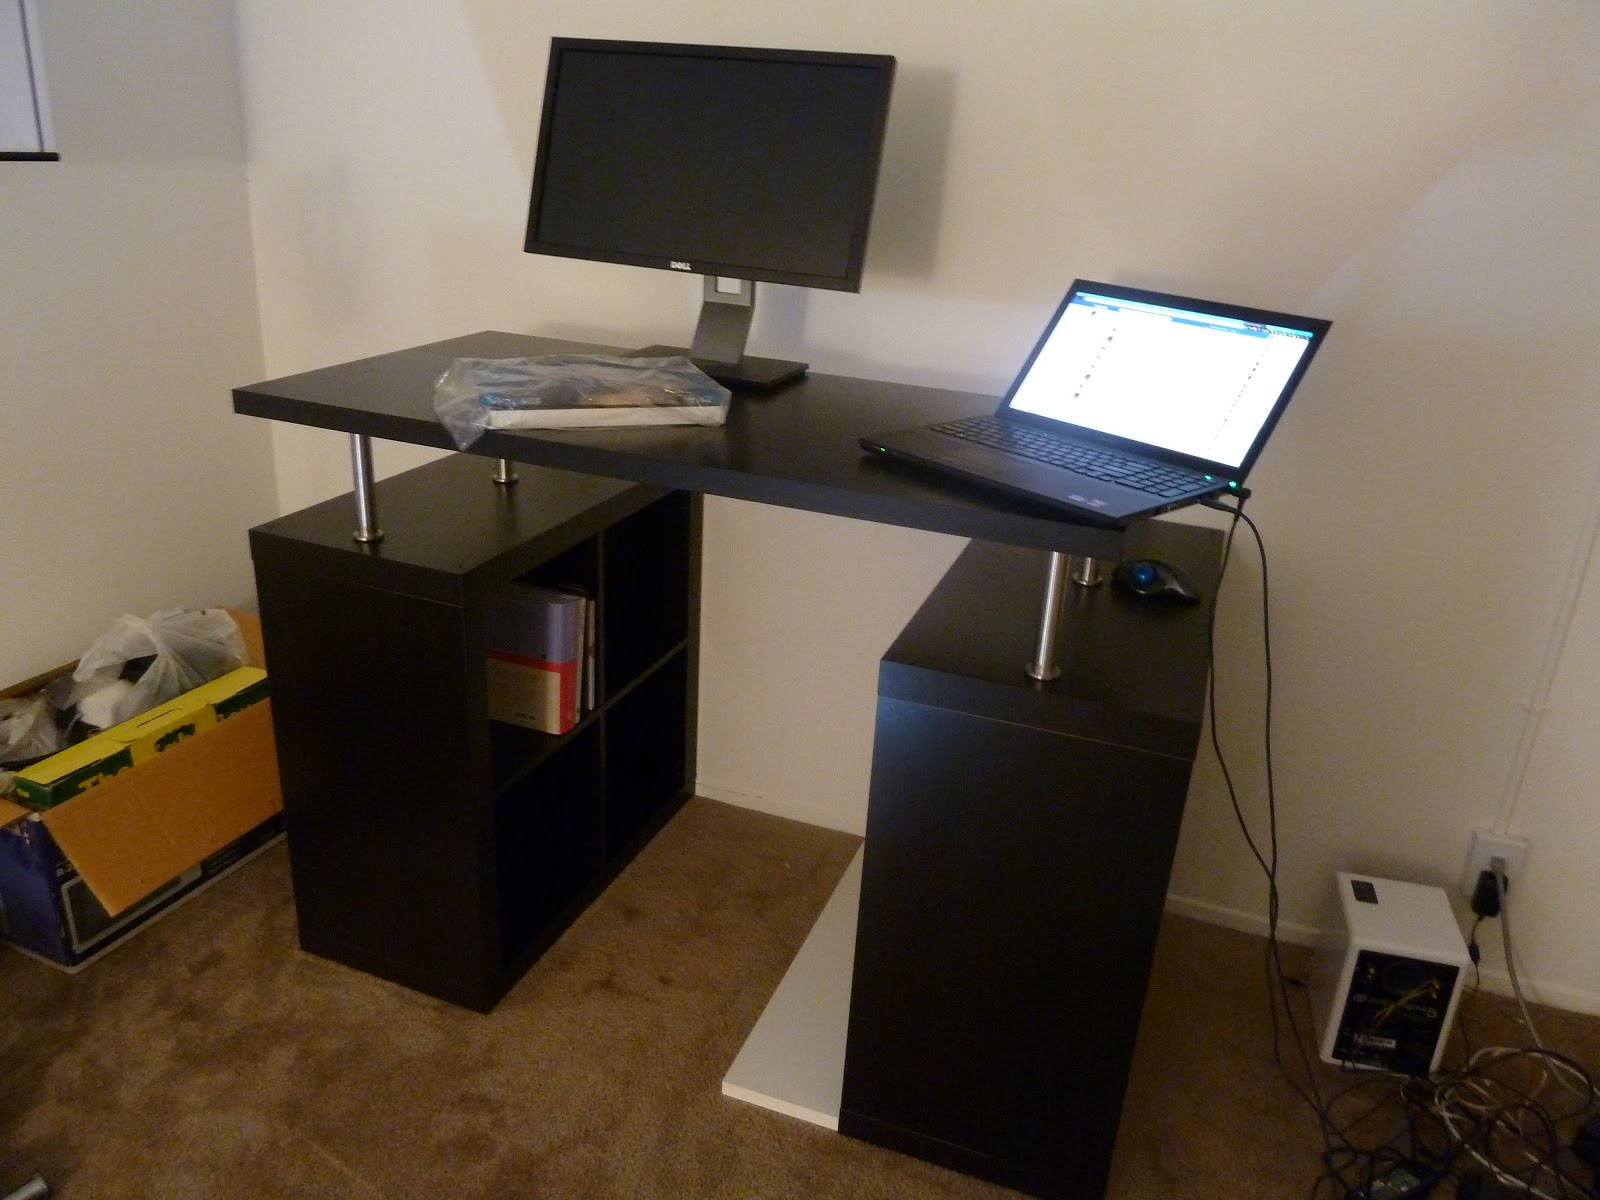 Best ideas about DIY Standing Desk Ikea . Save or Pin Short Blue Sky My DIY Standing Desk with IKEA parts Now.